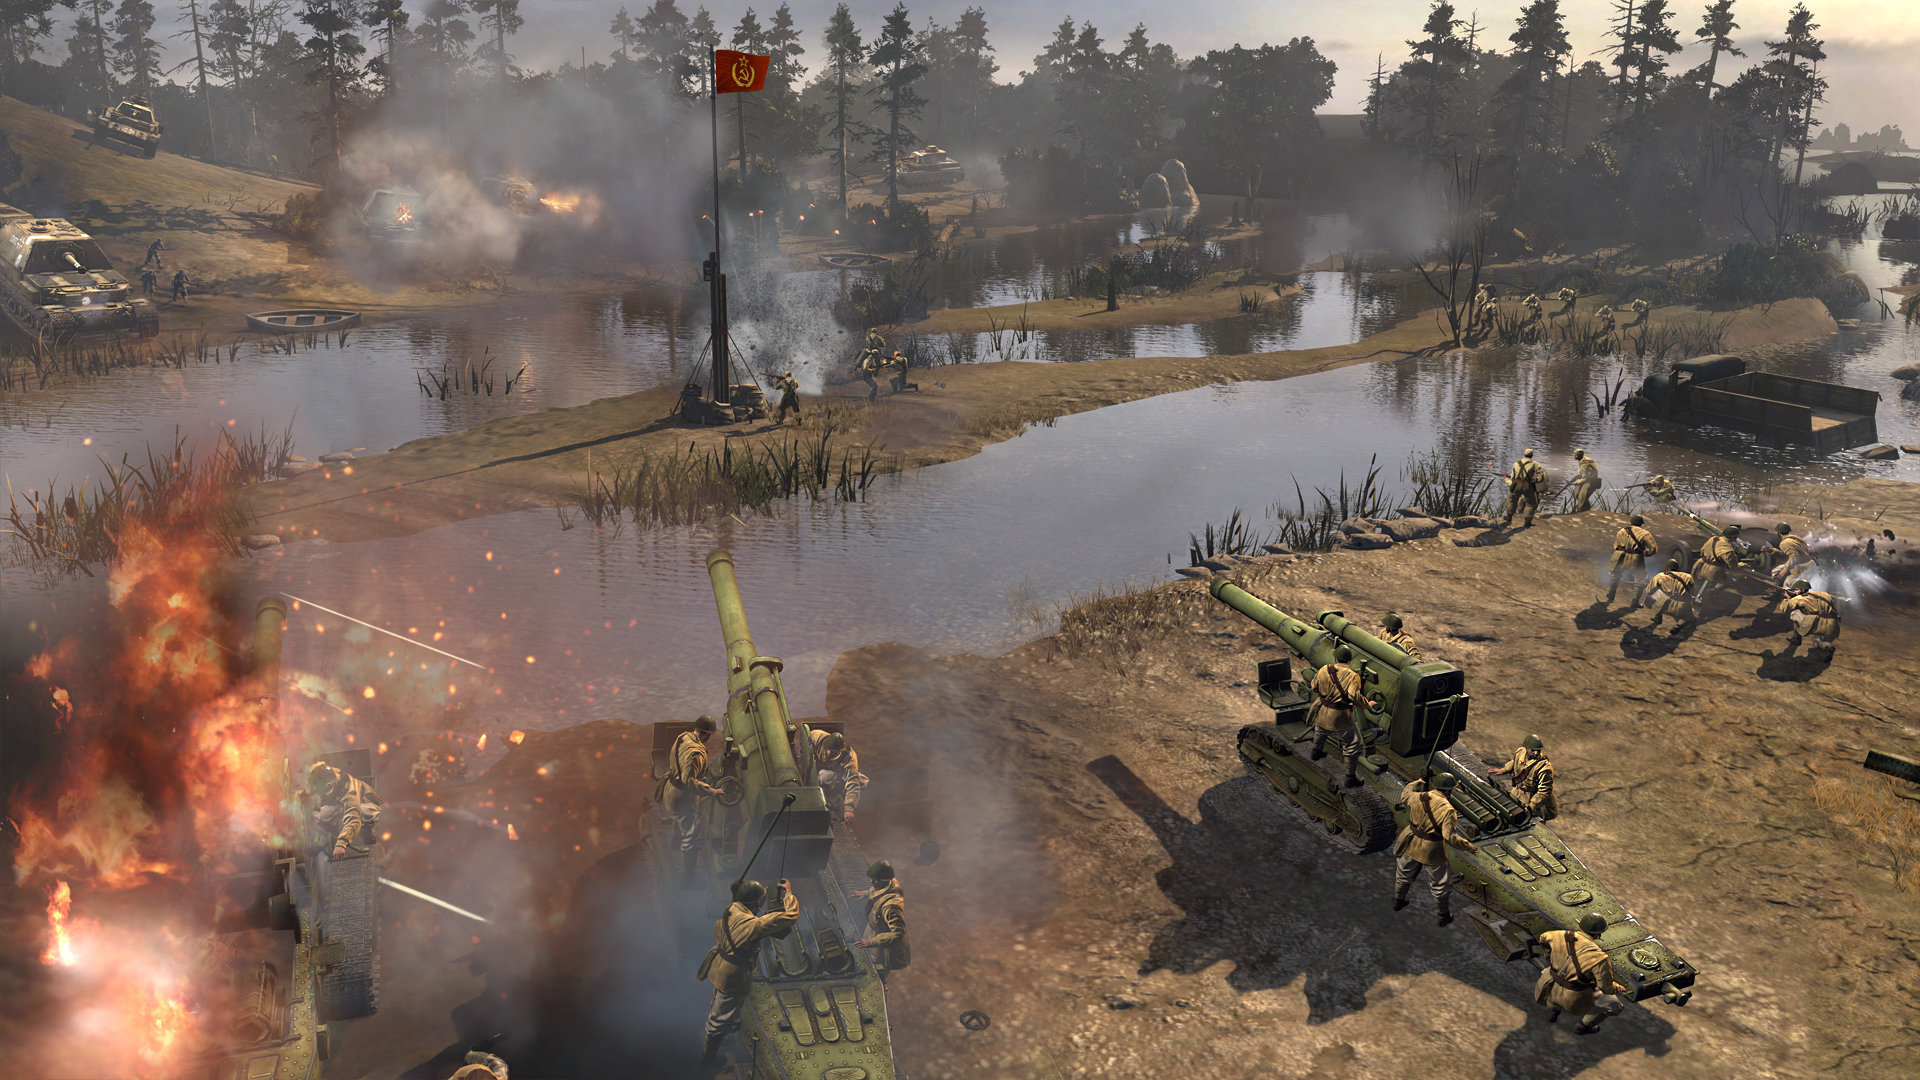 Company Of Heroes 2 Backgrounds, Compatible - PC, Mobile, Gadgets| 1920x1080 px